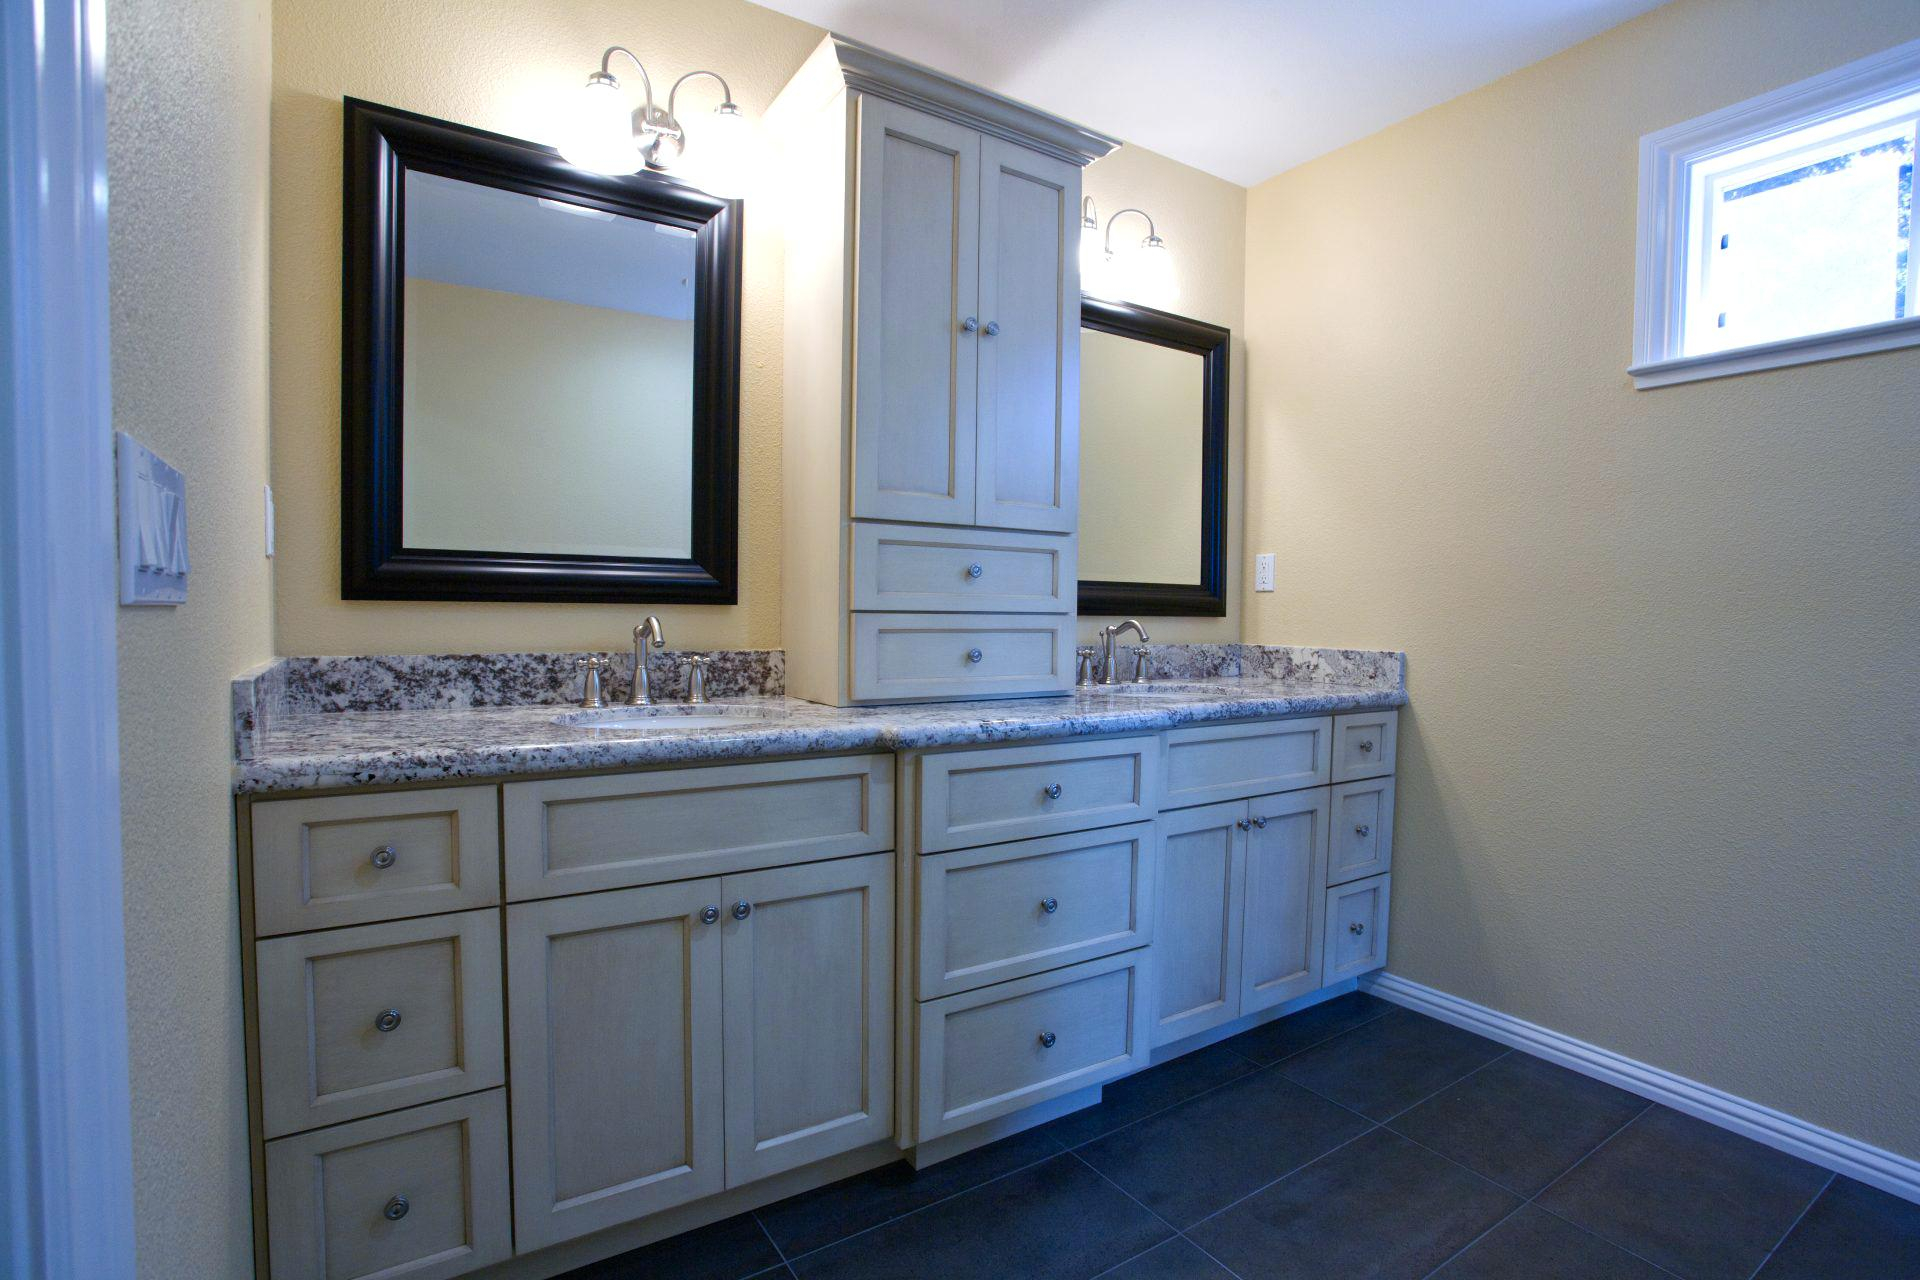 Bathroom Vanities San Jose Thedancingparent Com 11 Quantiplyco Intended For  Size 1920 X 1280